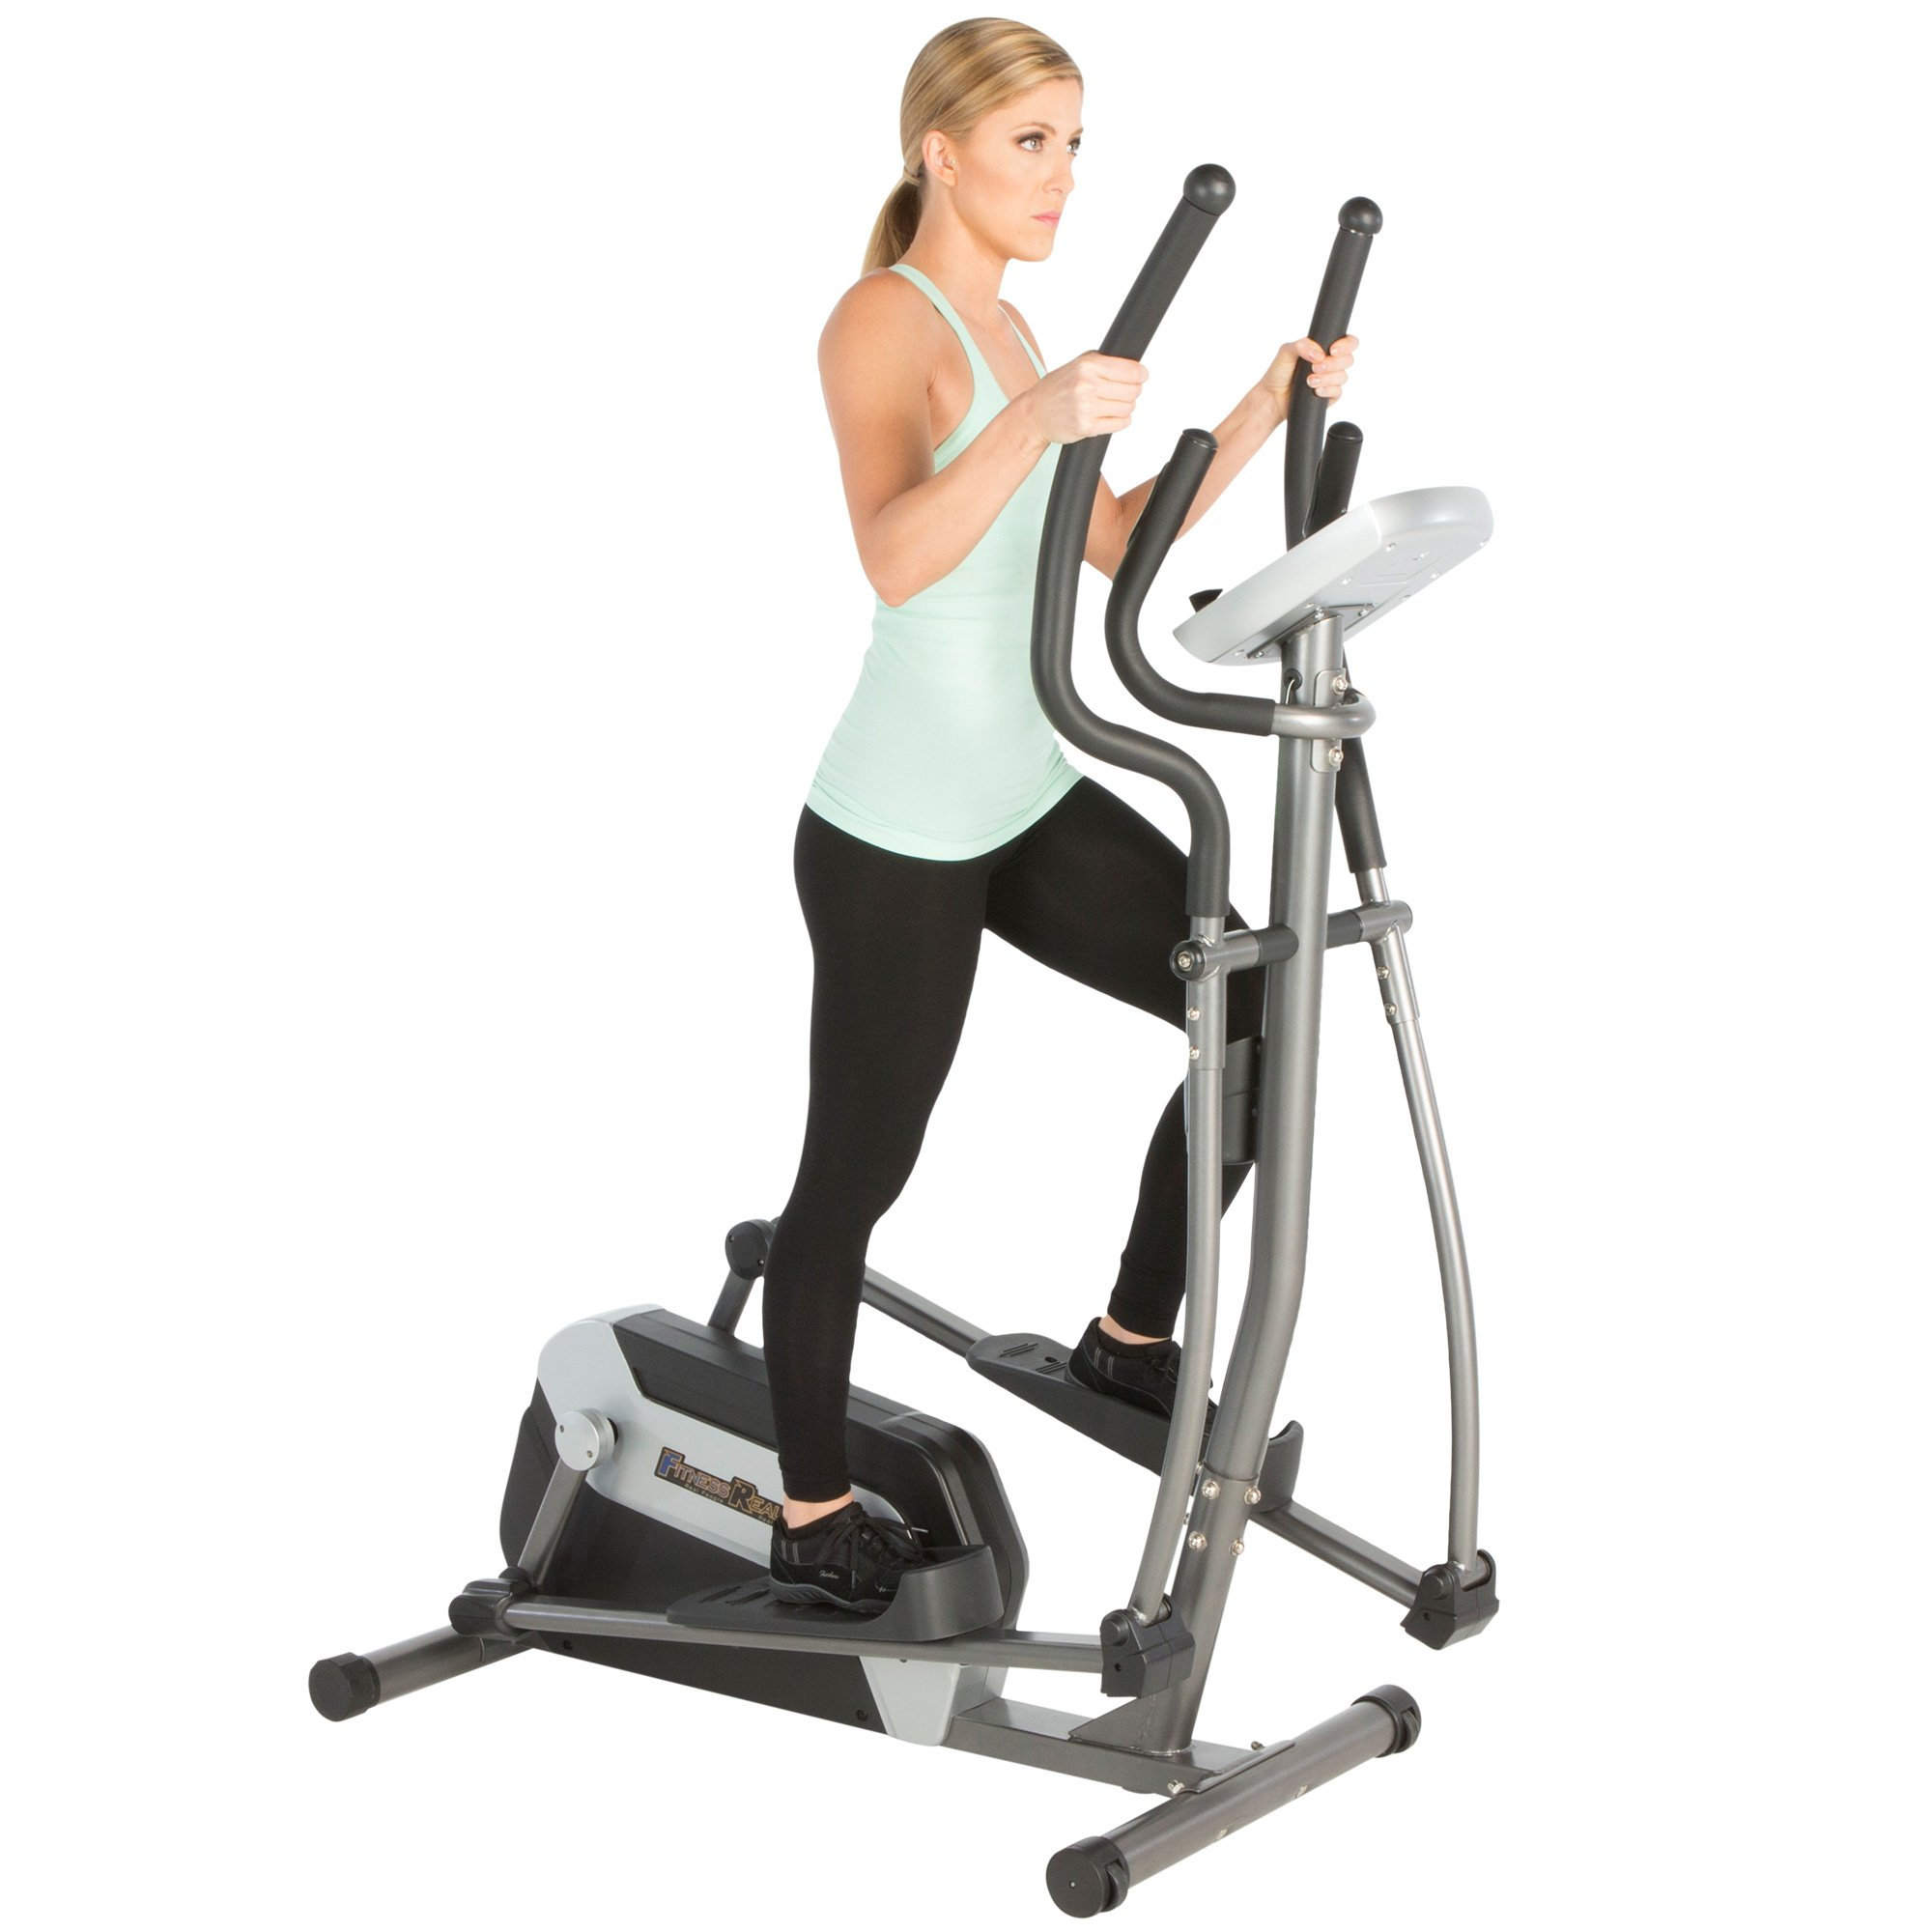 Fitness Reality E5500XL Magnetic Elliptical Trainer with Comfortable 18'' Stride by Fitness Reality (Image #3)